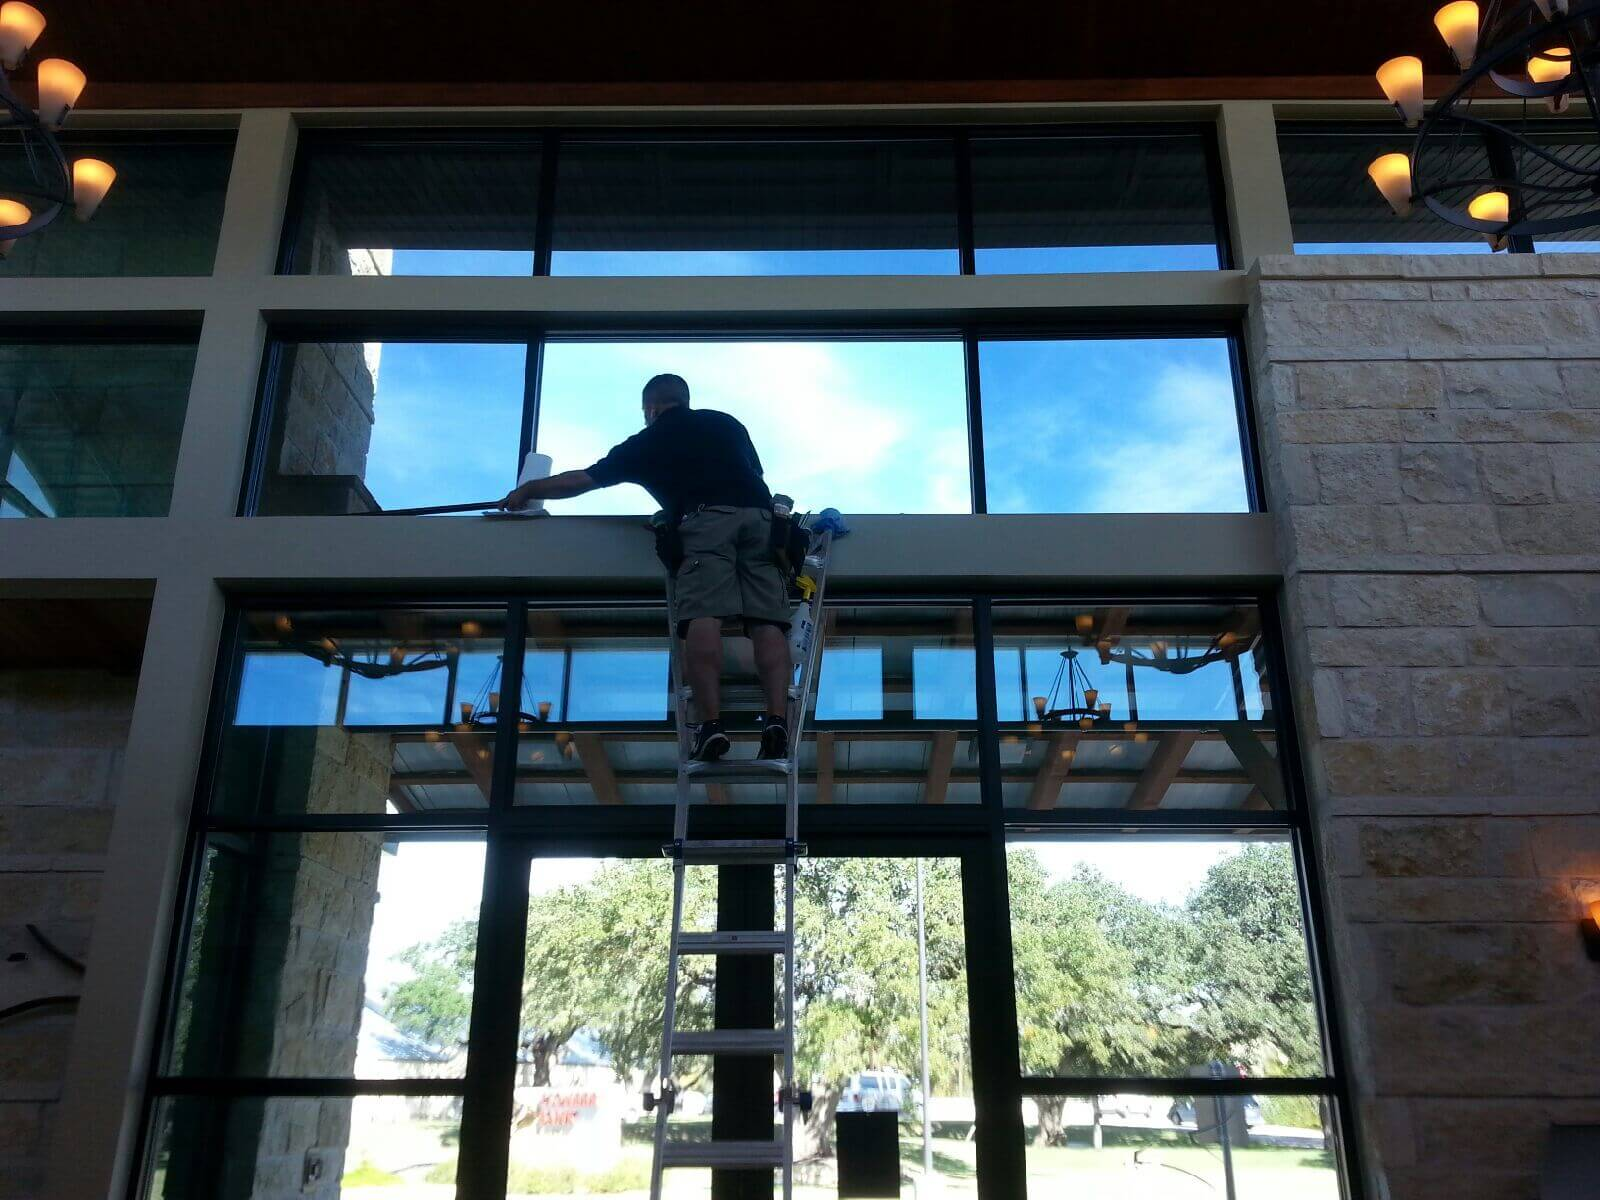 commercial windows tinting film | Commercial Window Tinting Experts & Glass Film - Window ...